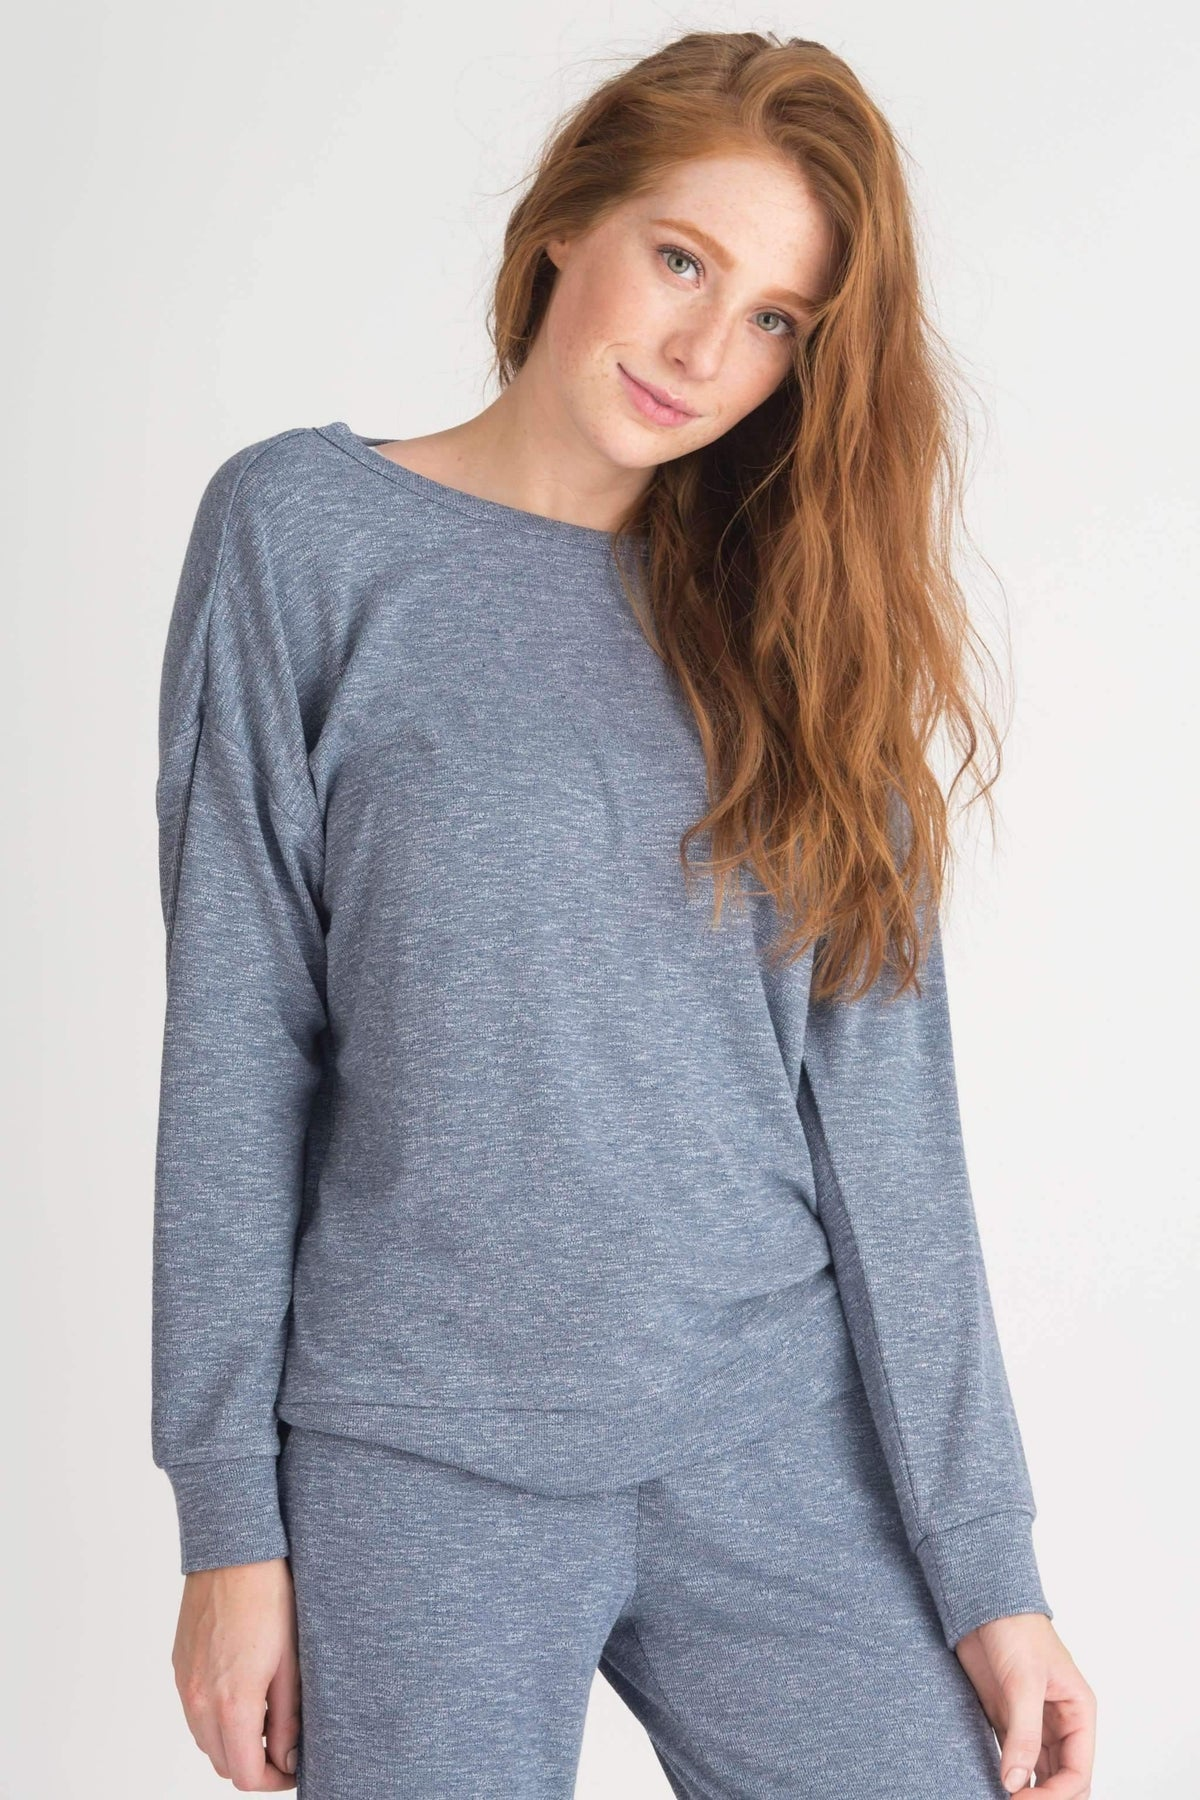 Weekender Sweater-Sleepshirt-Honeydew Intimates-Honeydew Intimates